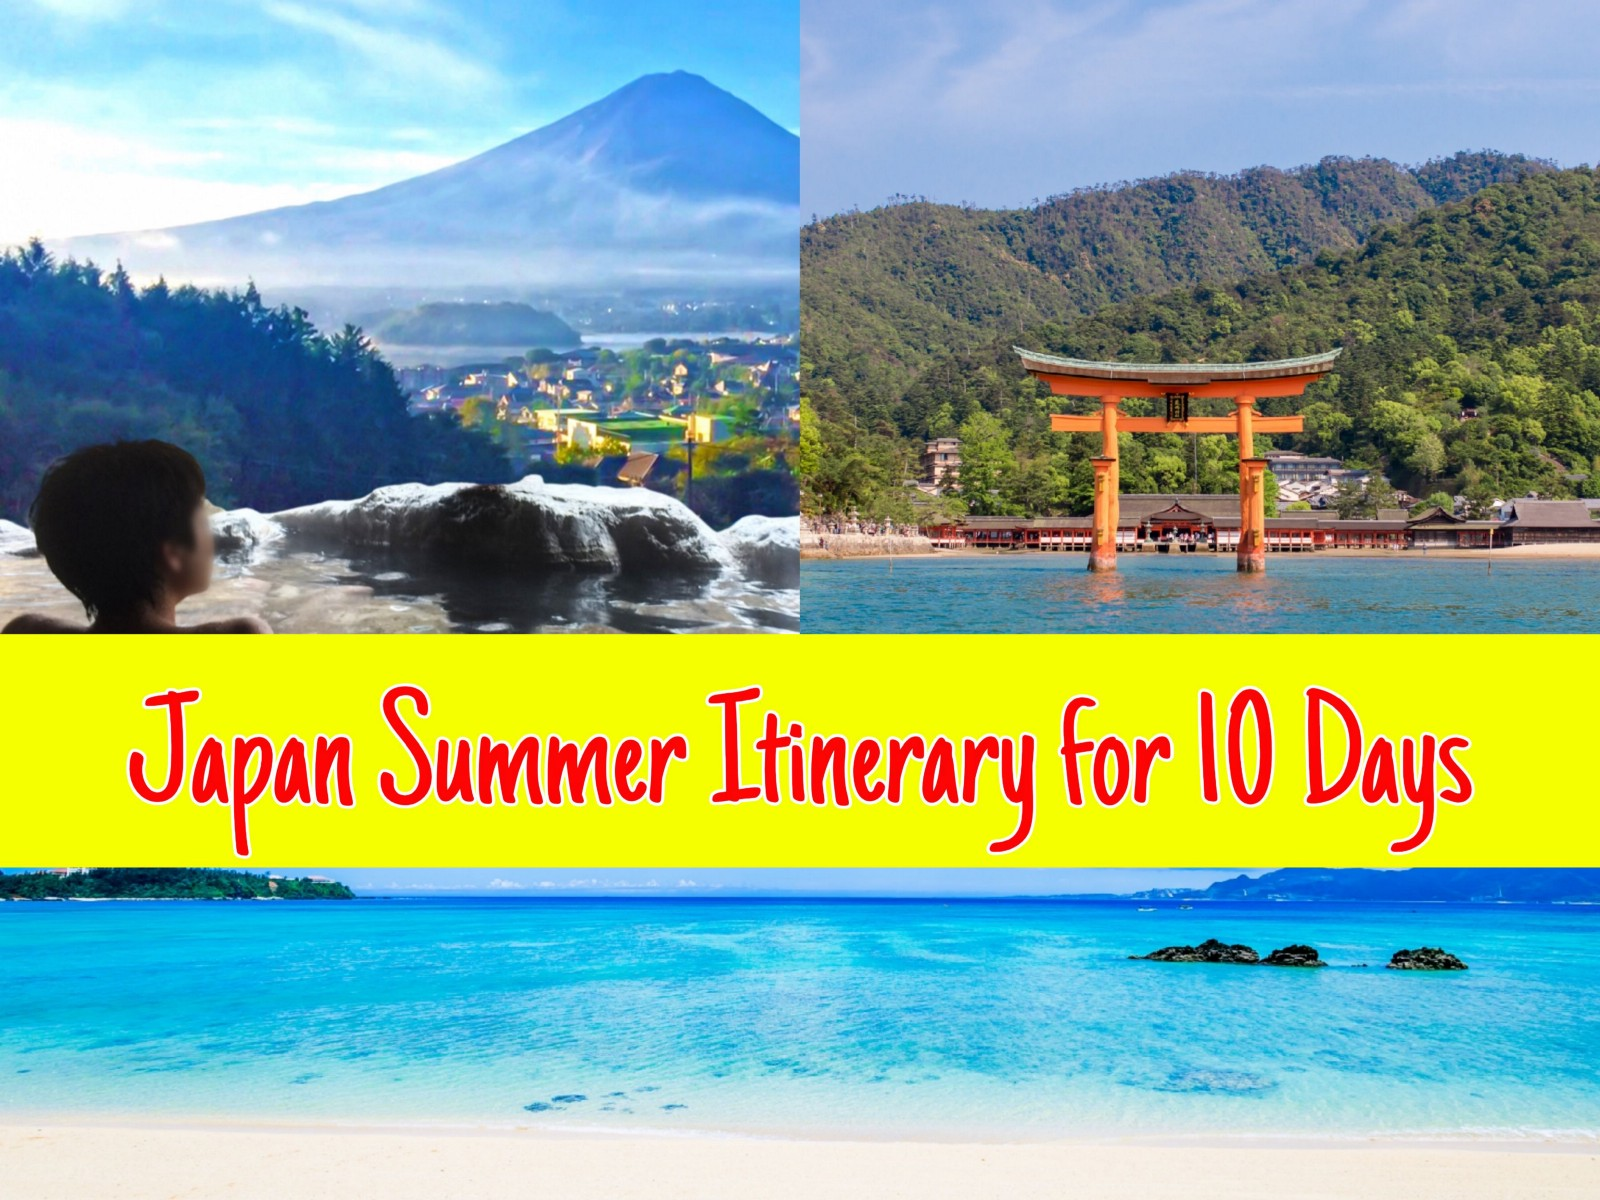 Japan Summer Itinerary for 10 days